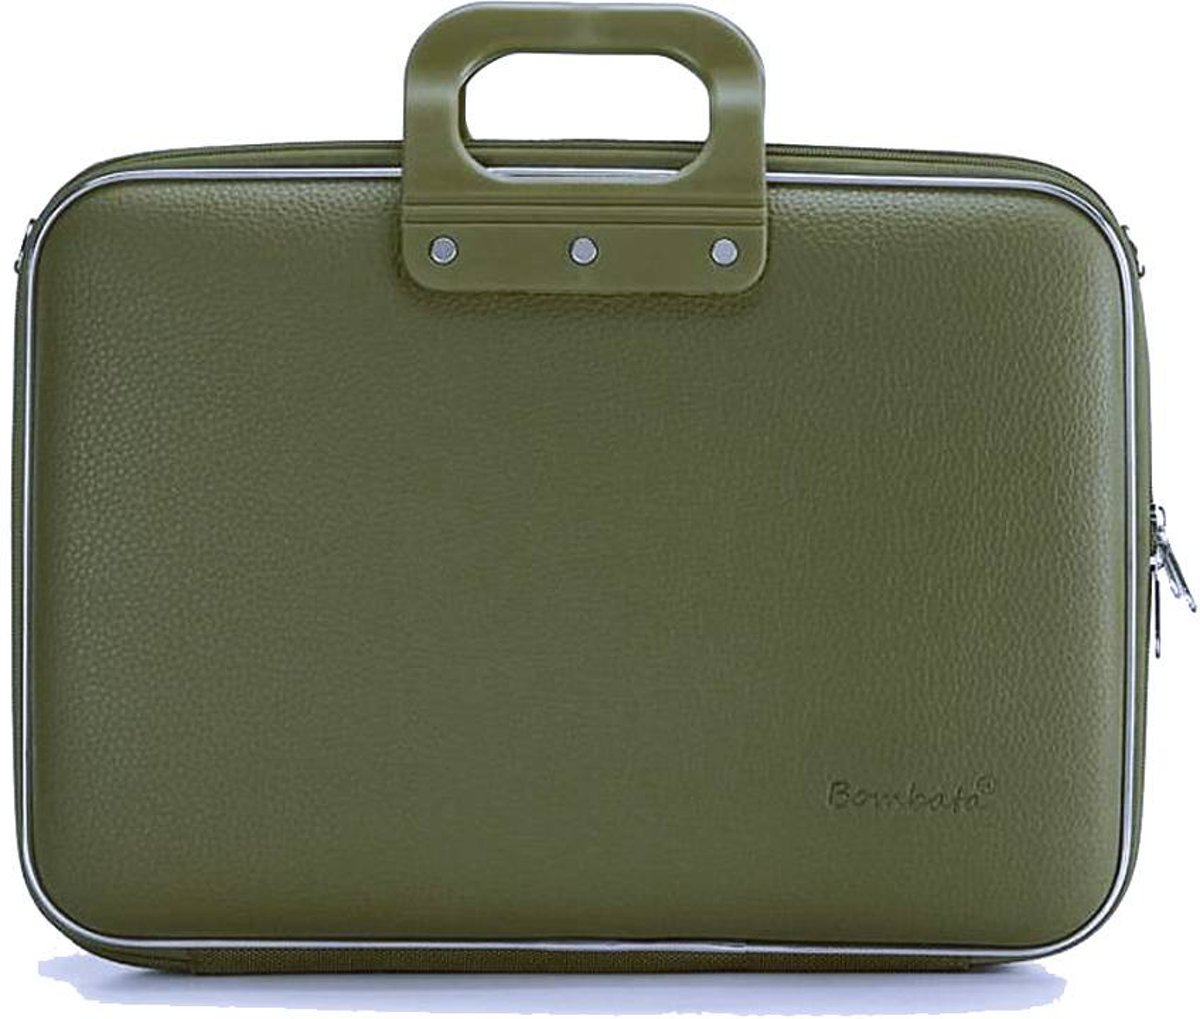 Bombata Business 15 inch Laptoptas Kaki Green